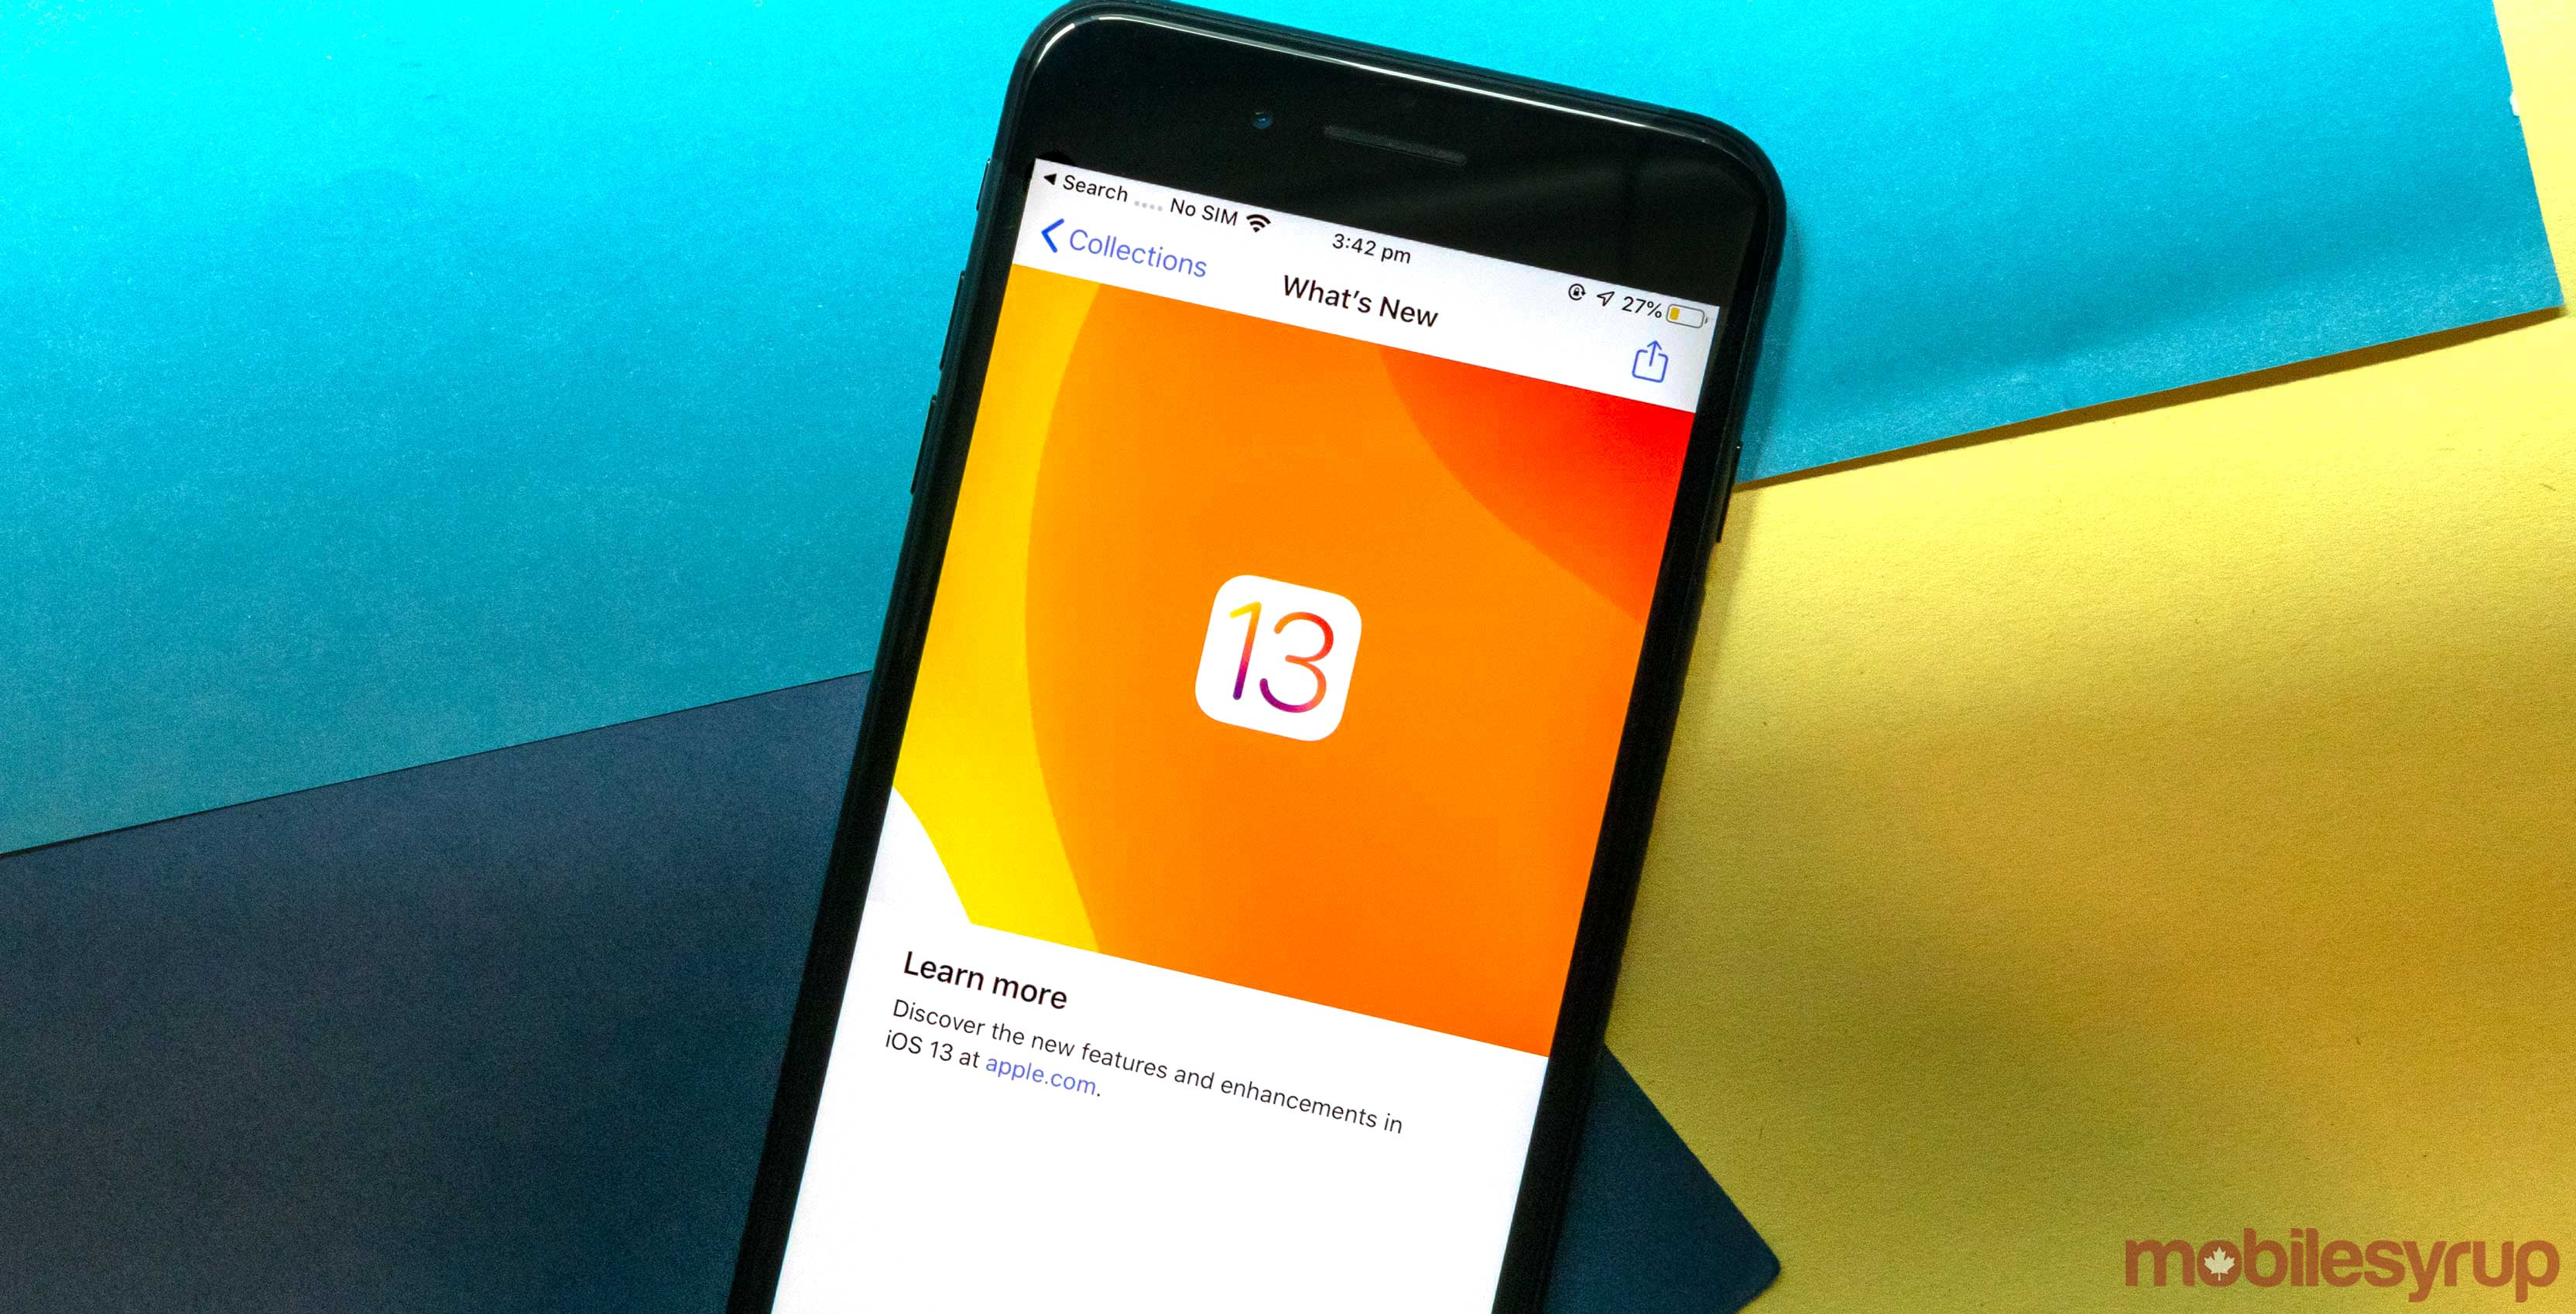 iOS 13 is here and you can download it now